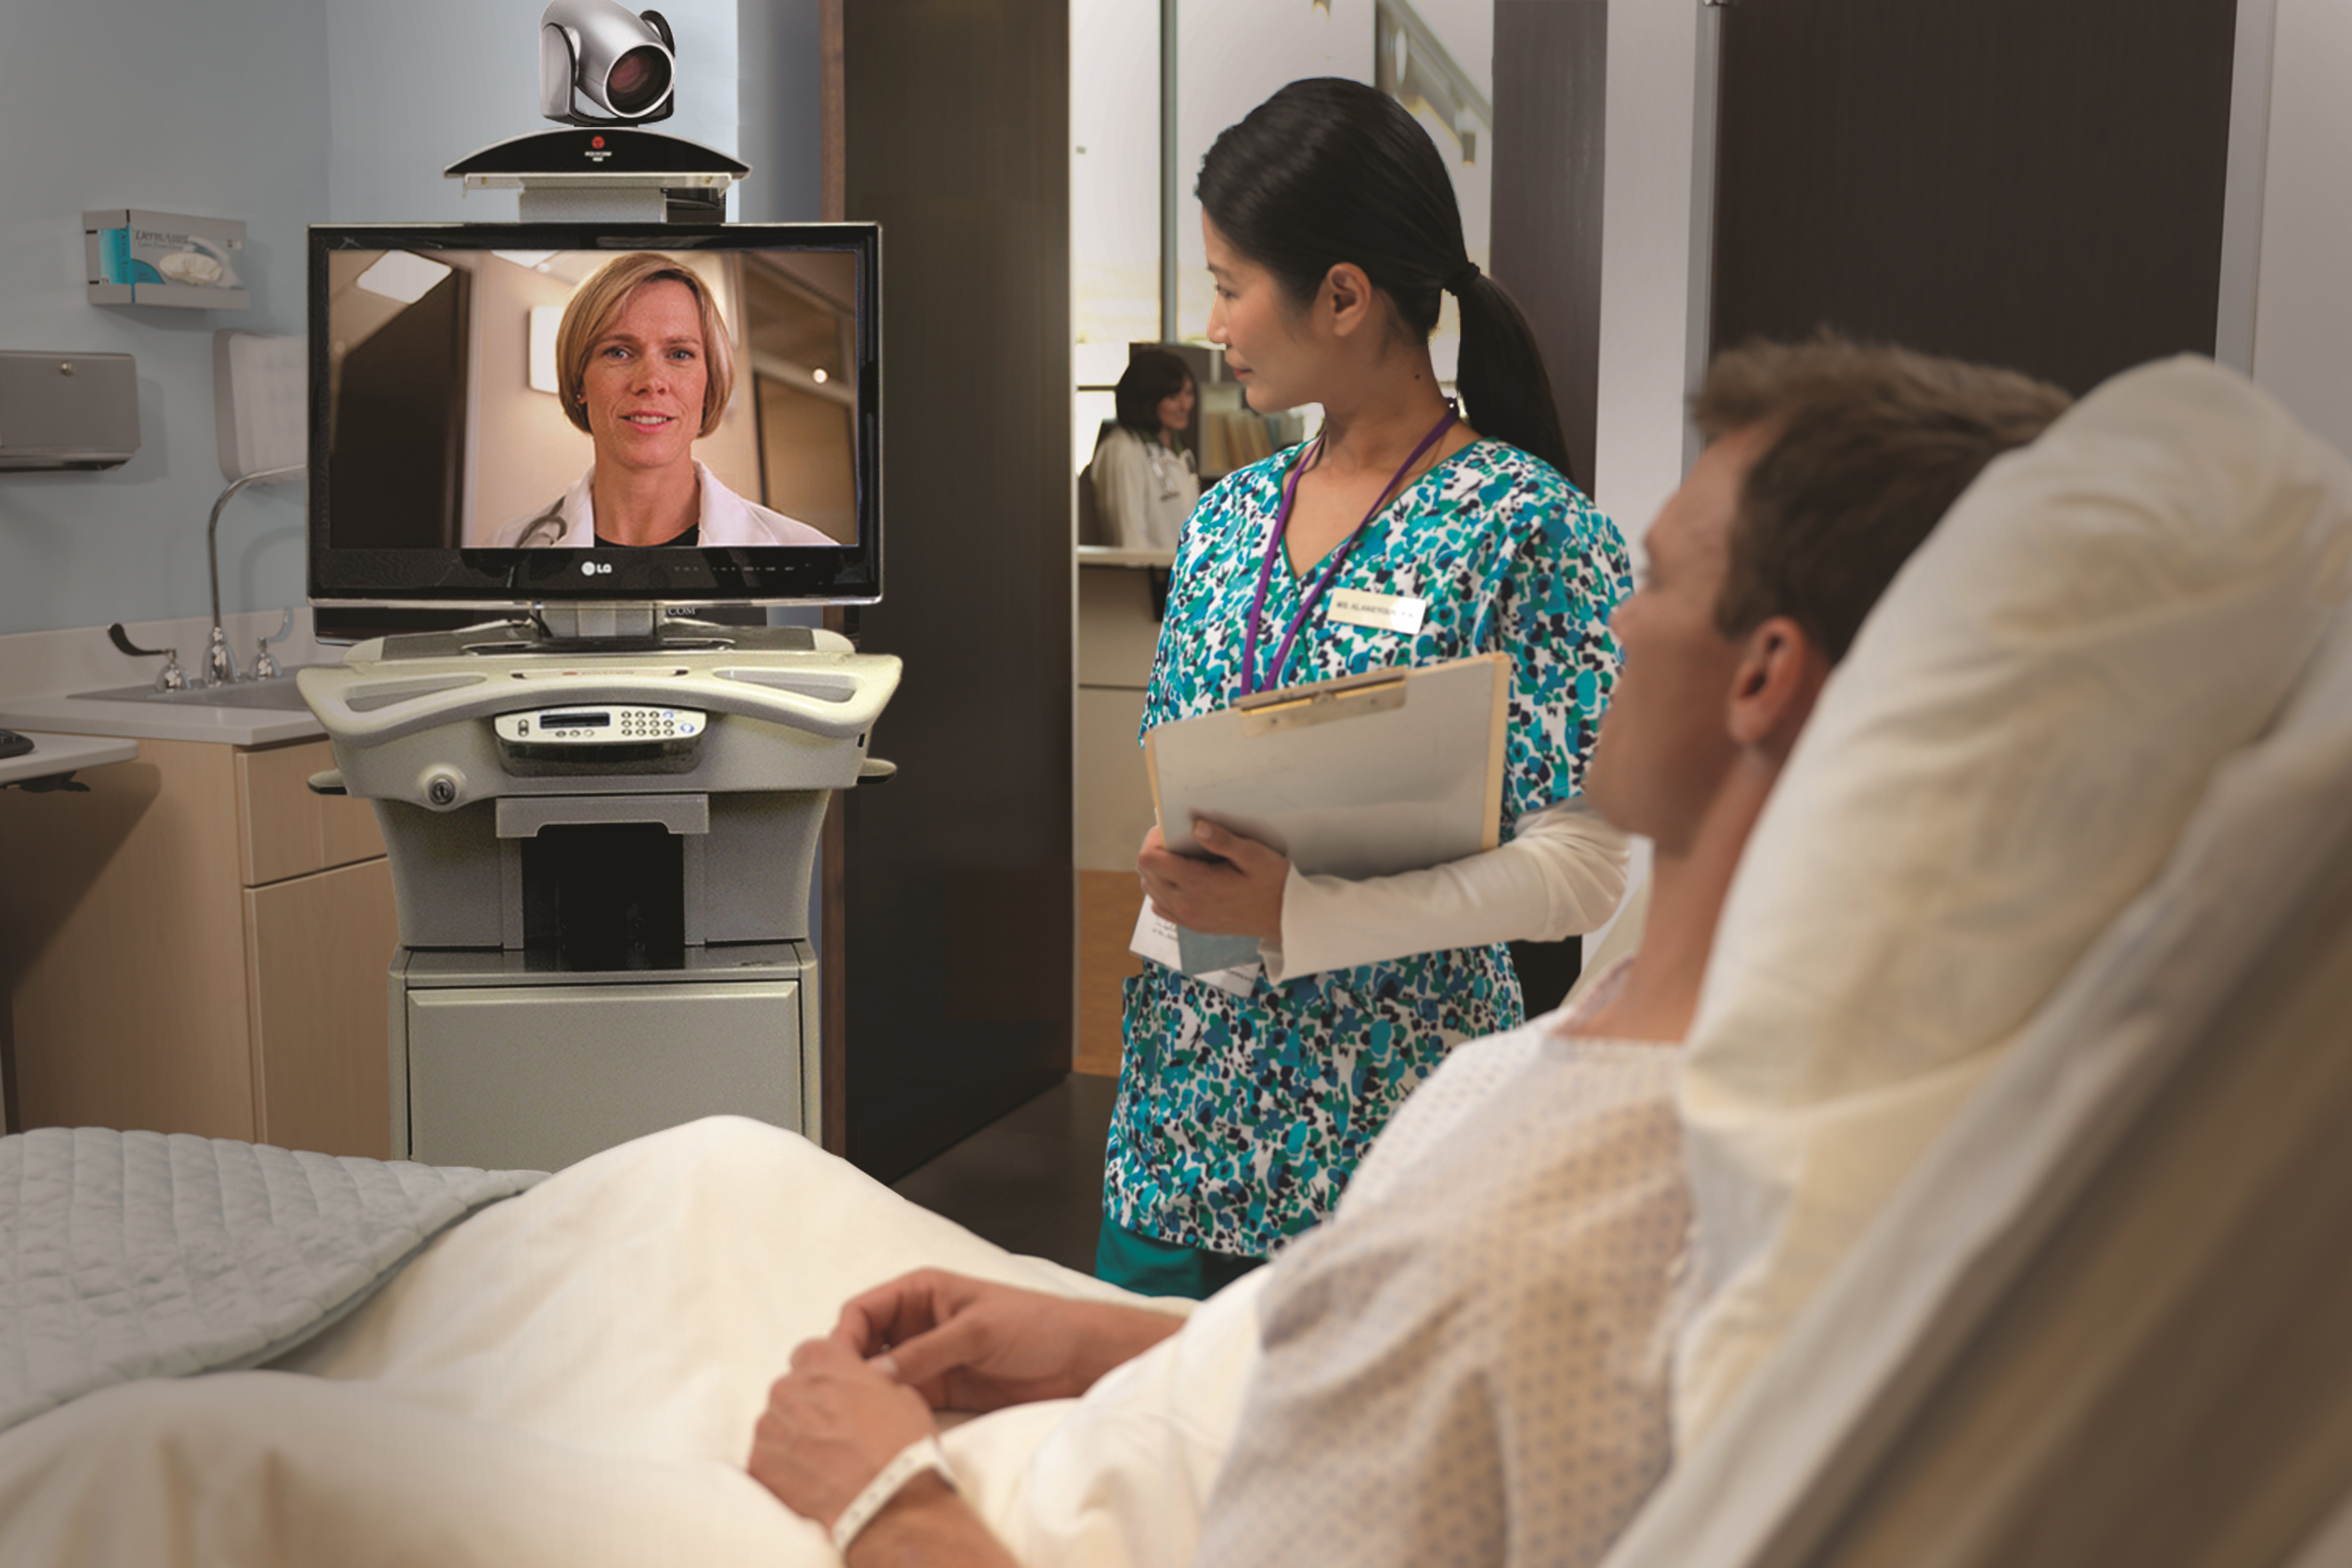 Telemedicine, teleconferencing with a doctor and patient and nurse